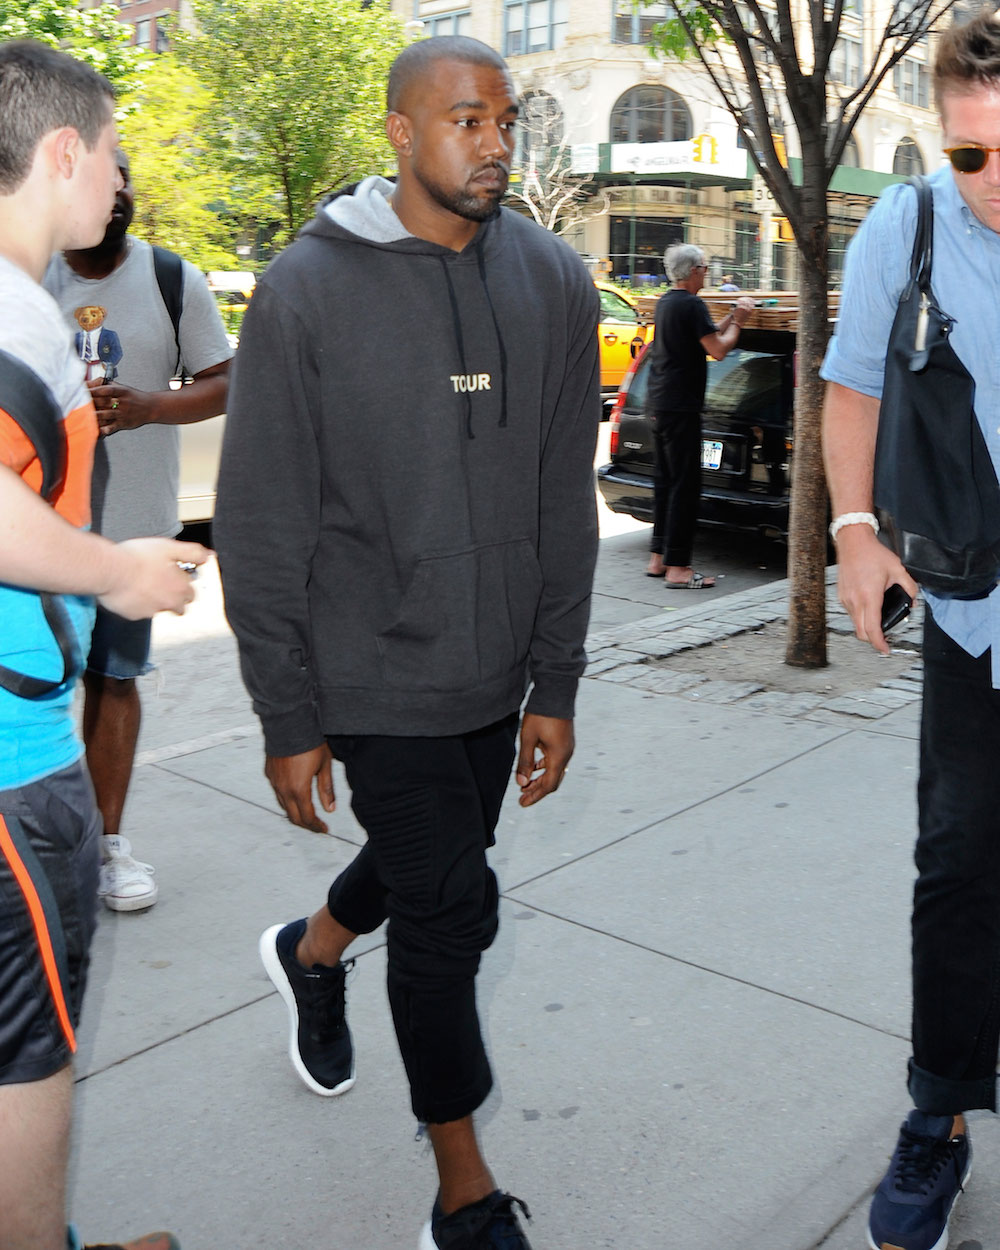 Kanye West greets fans while out and about in New York City